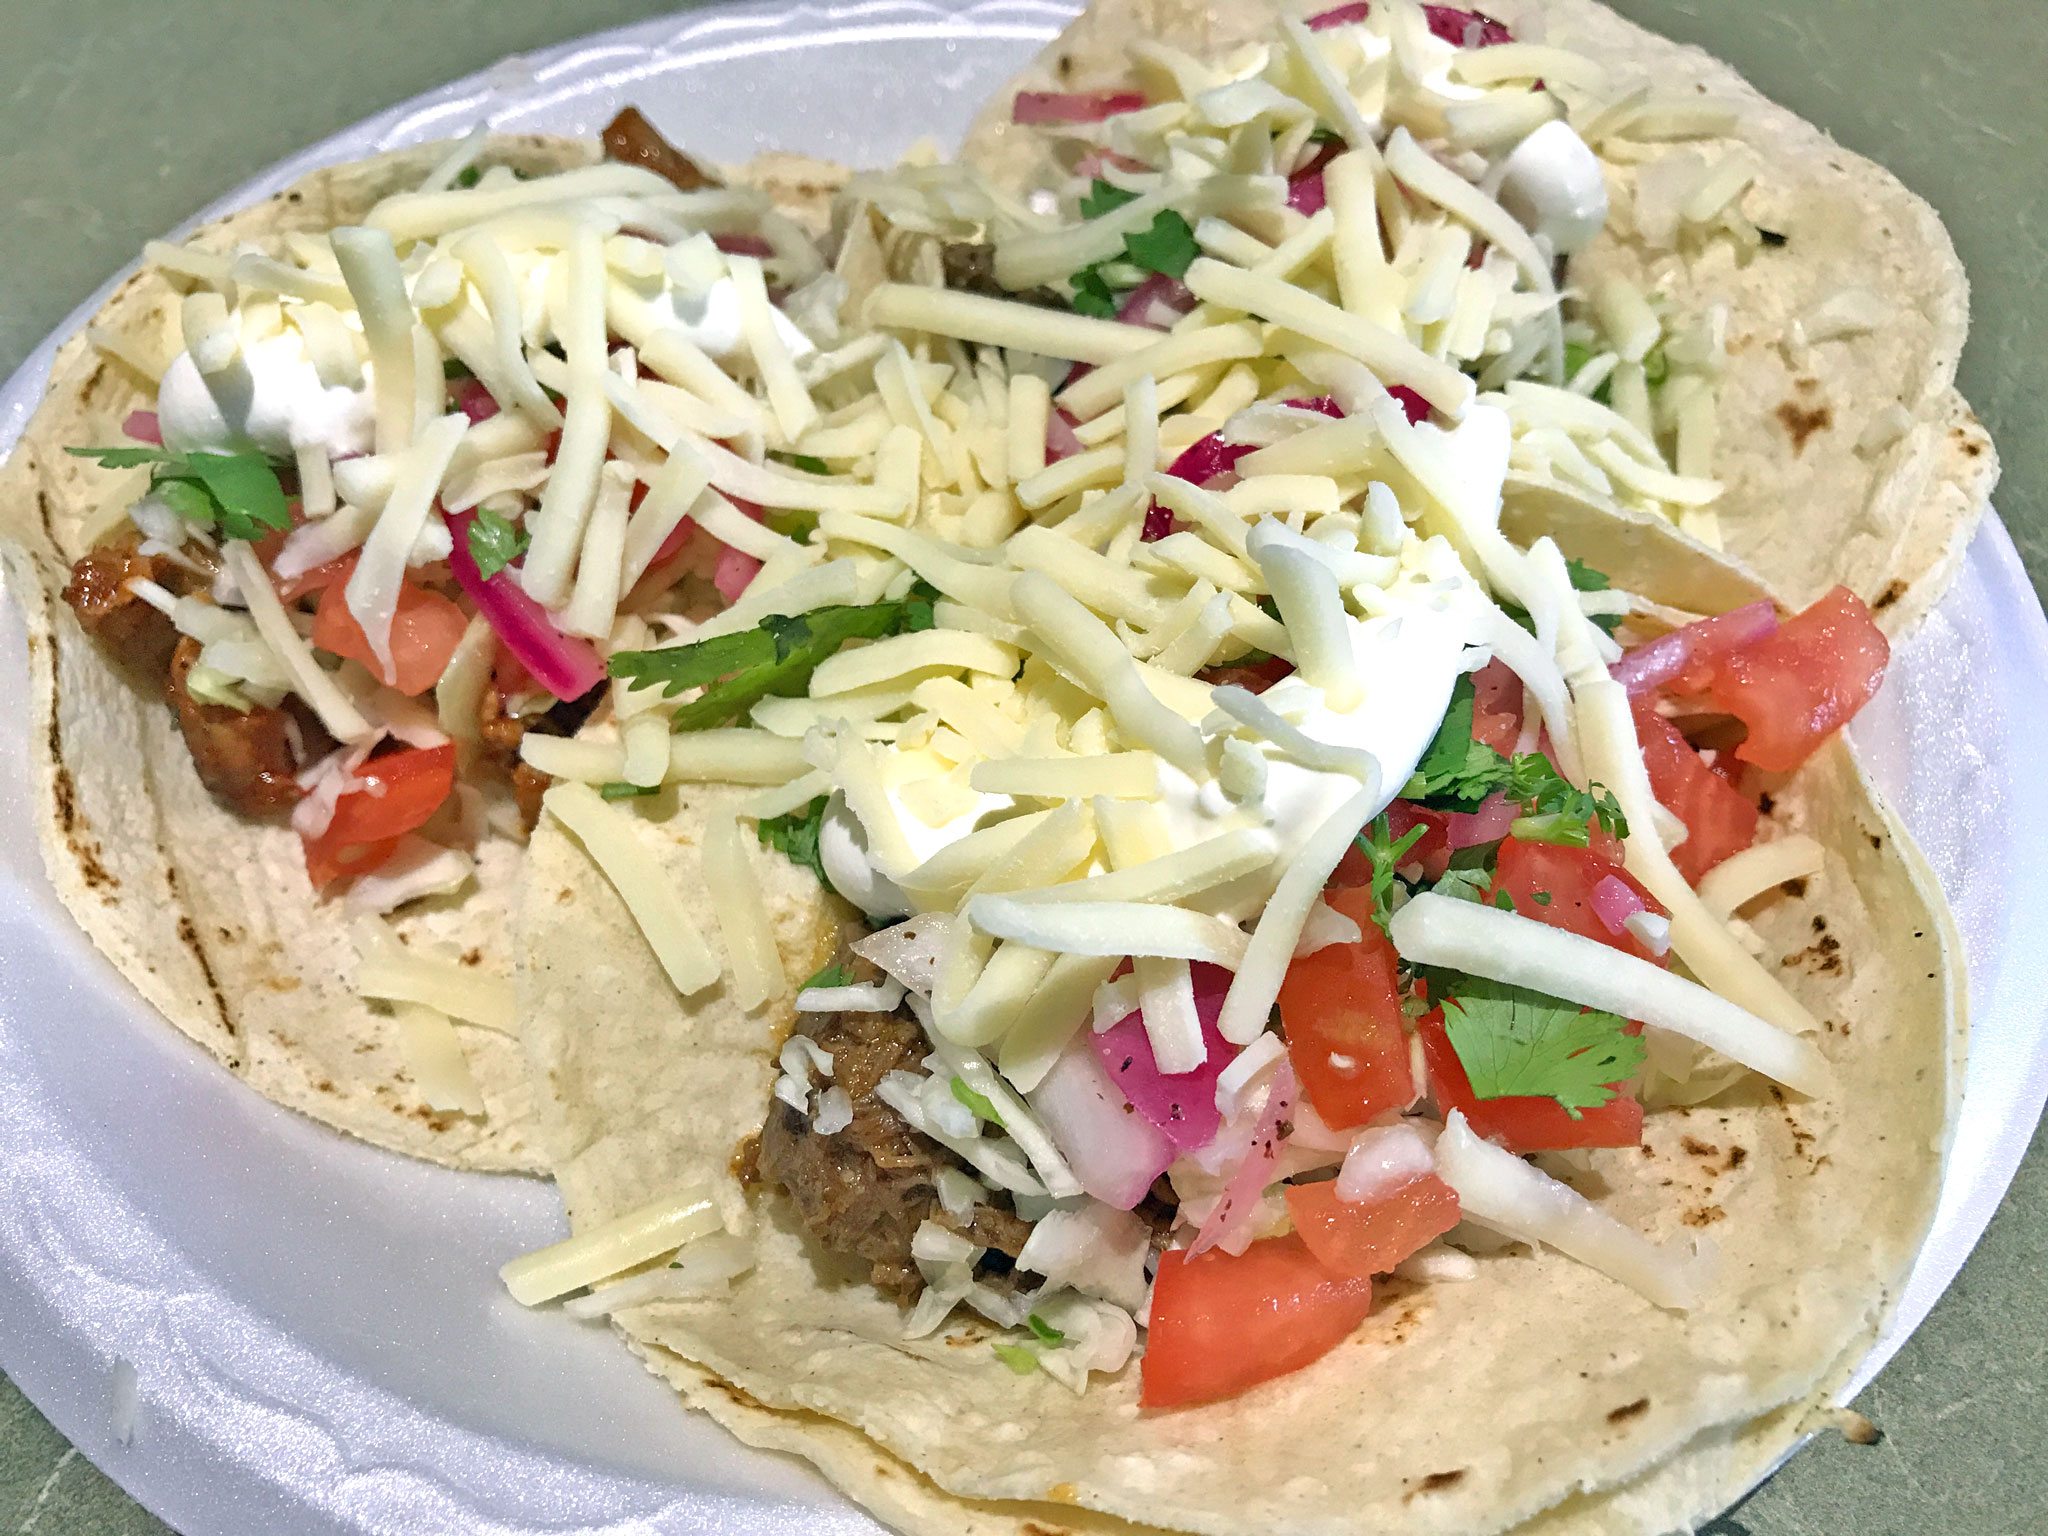 Steak, Shredded Beef & Shredded Pork Tacos